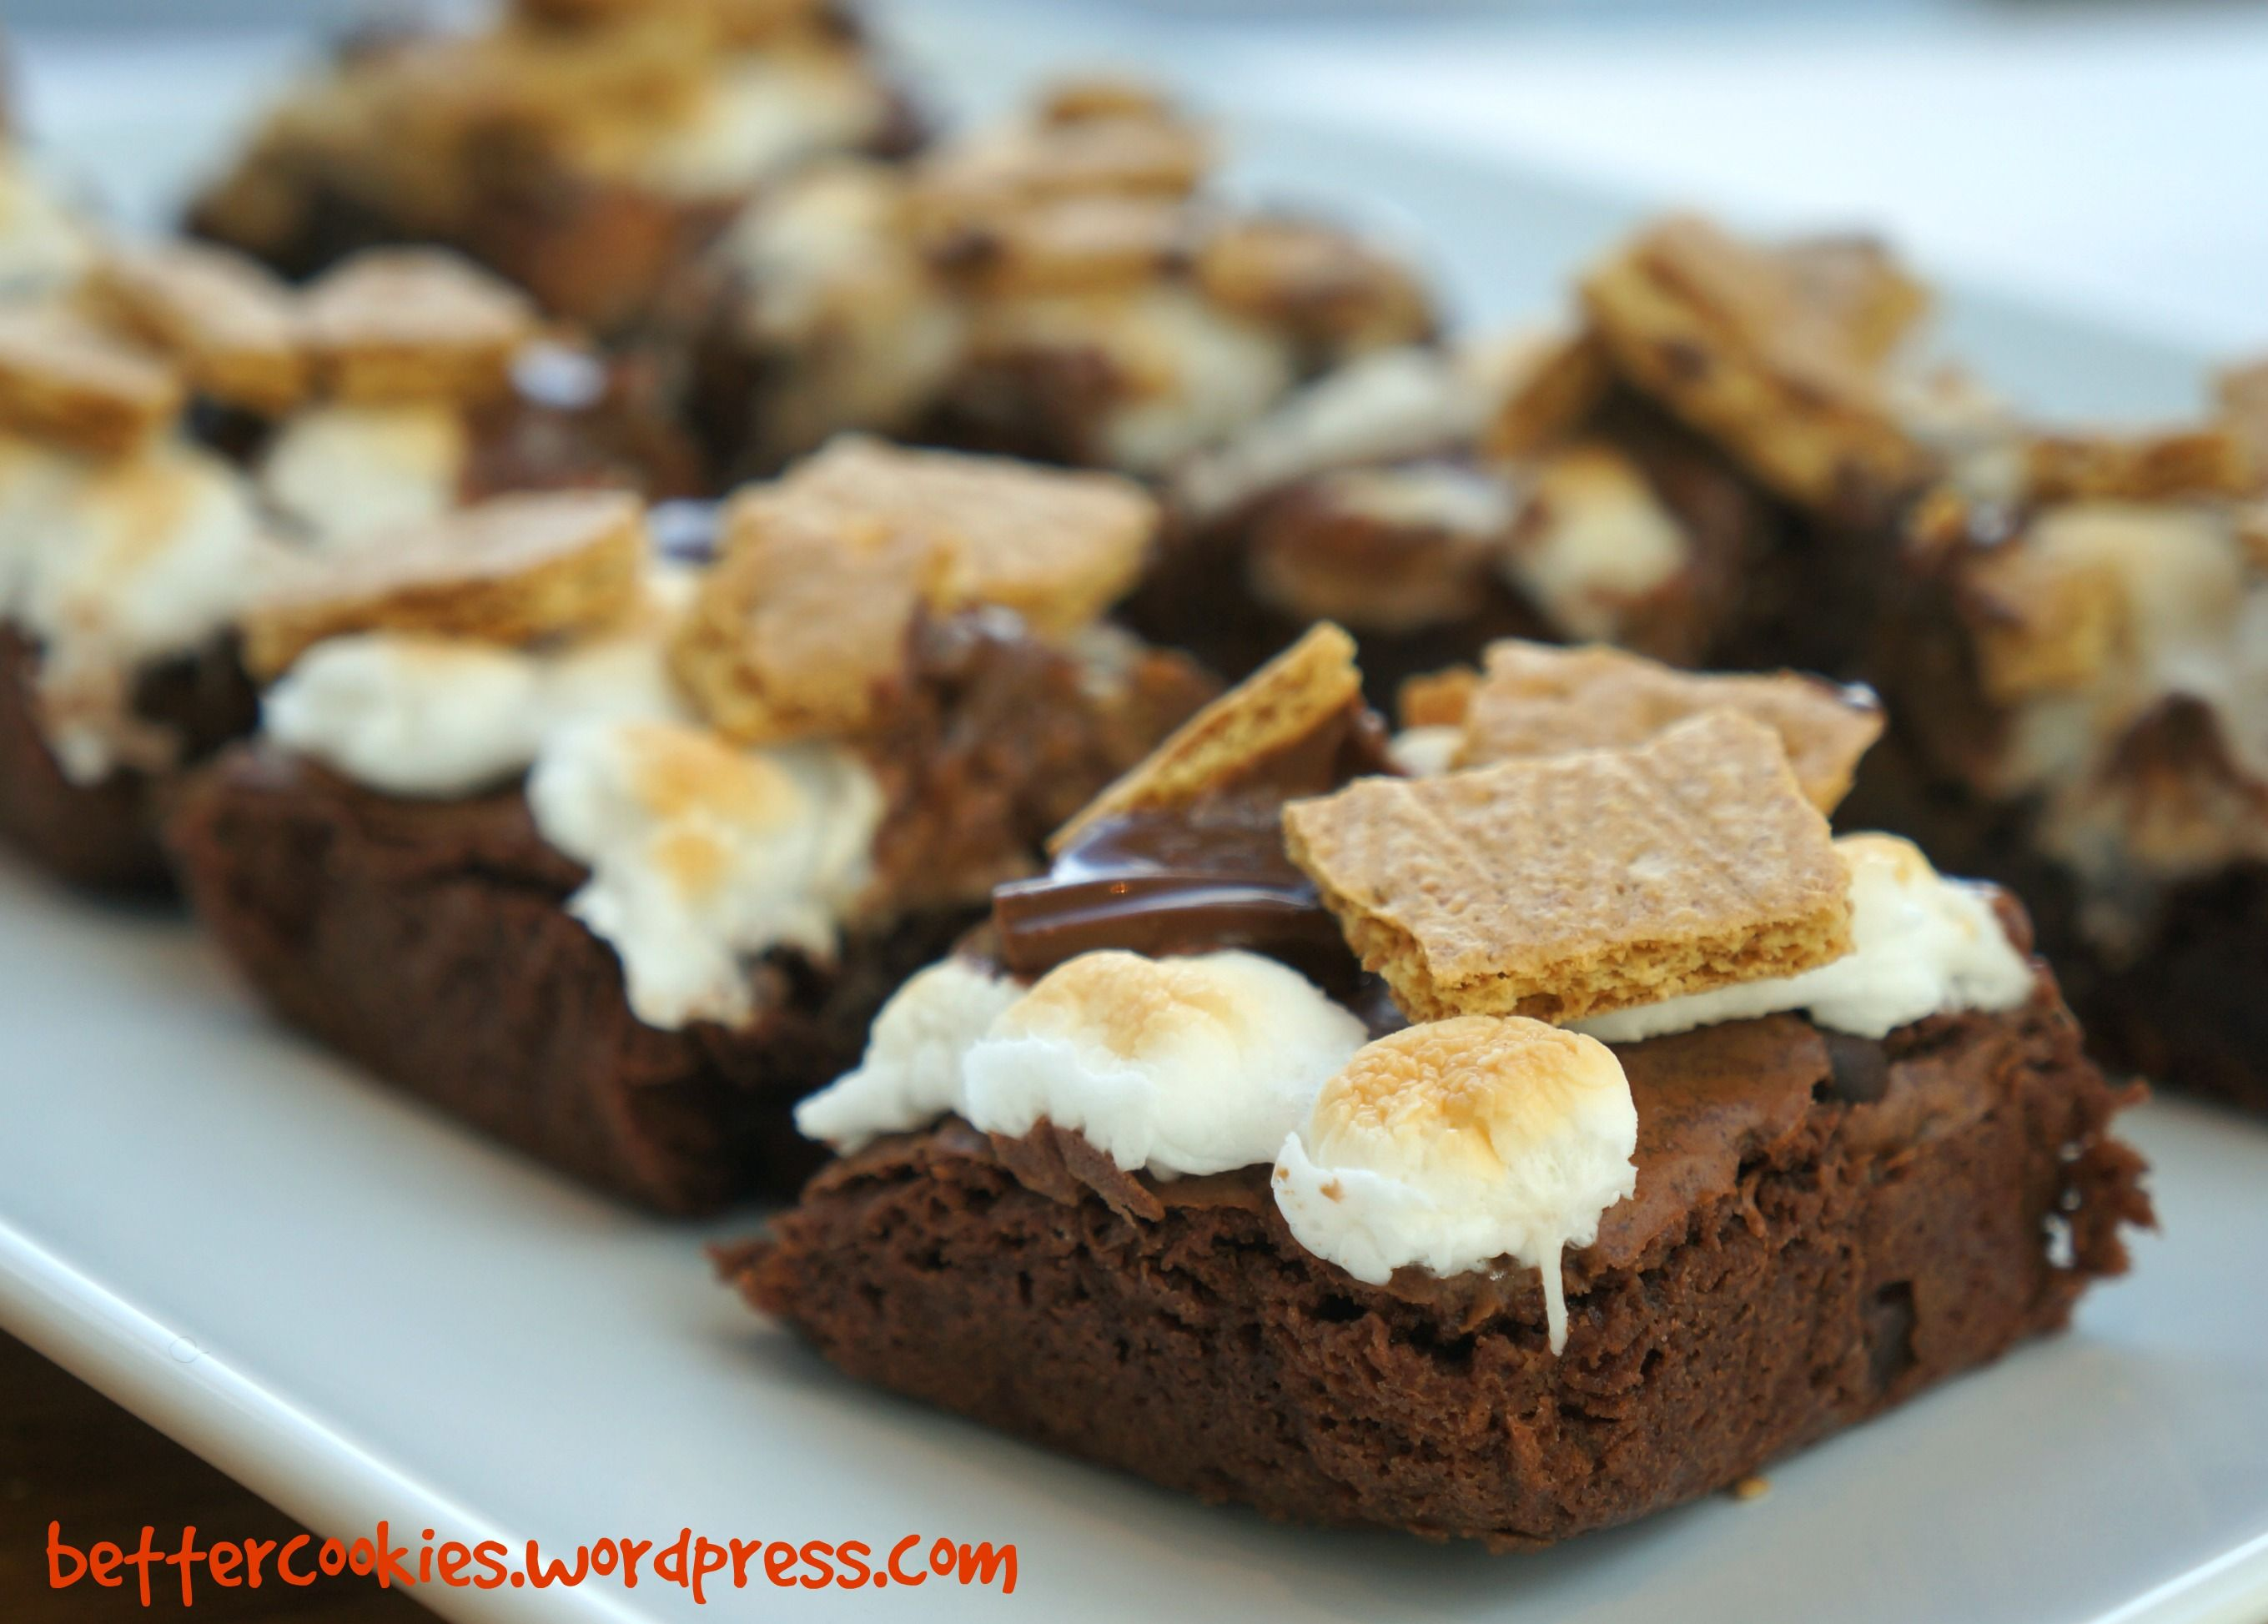 How to Make S'more Brownies recommendations